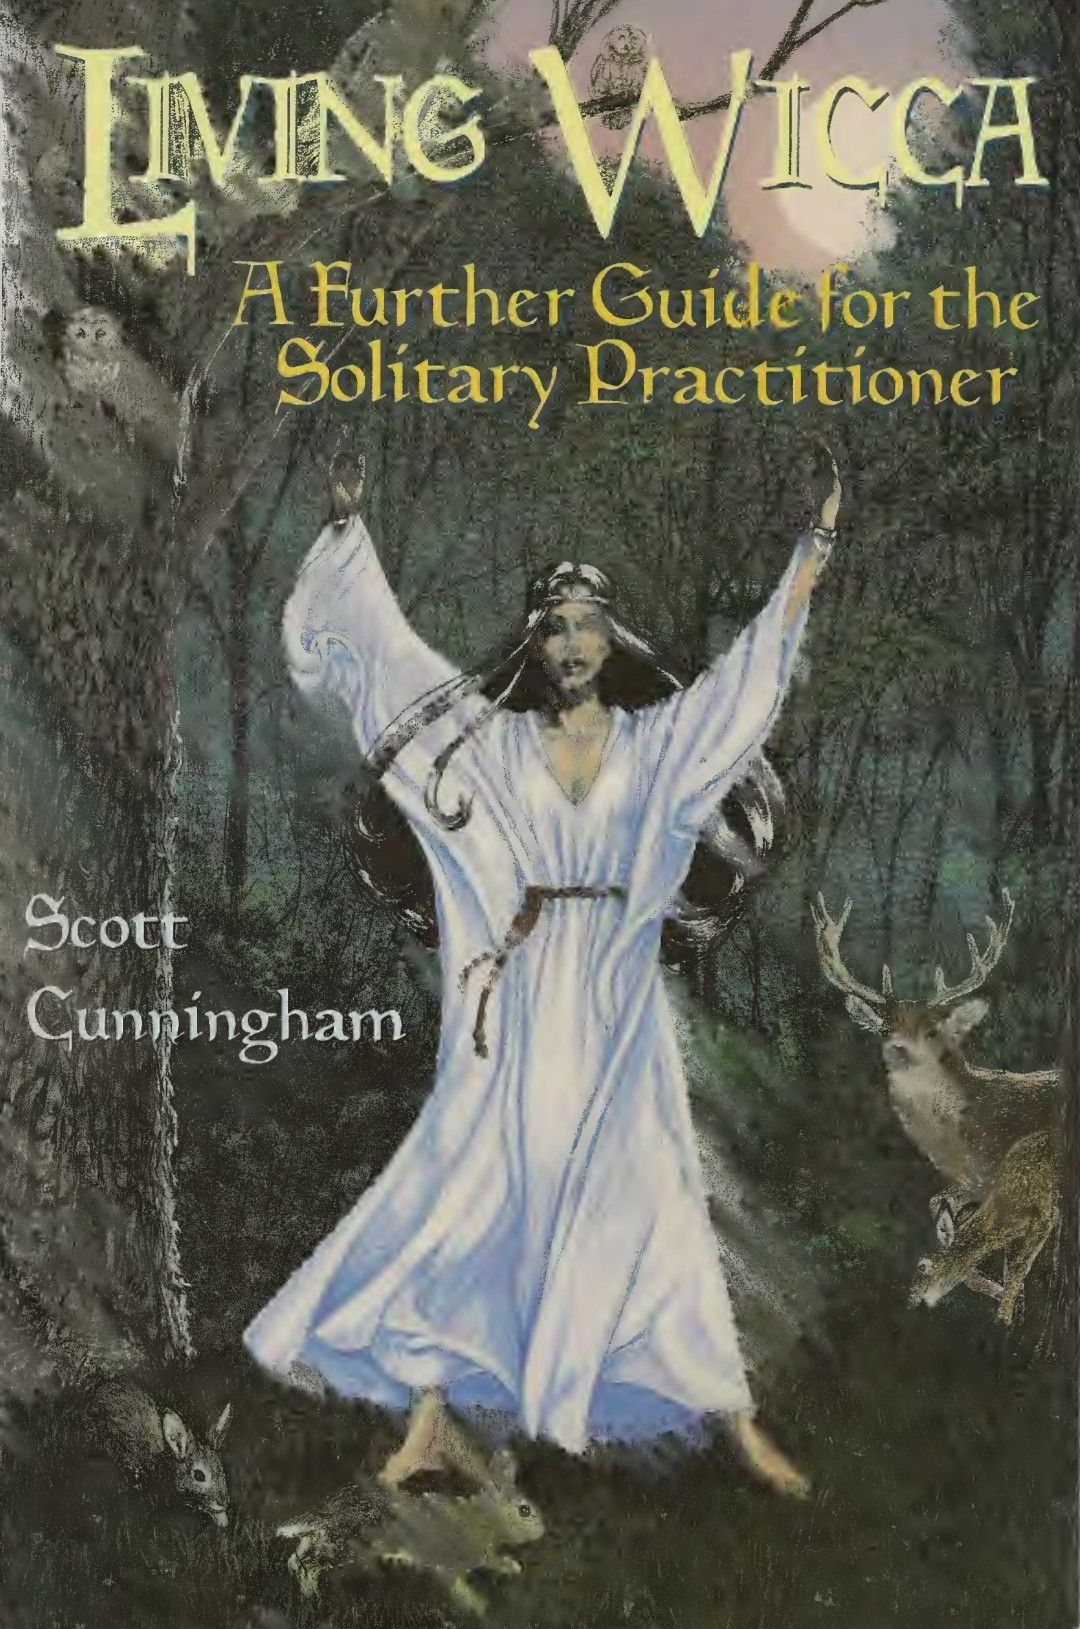 Living wicca a further guide for the solitary